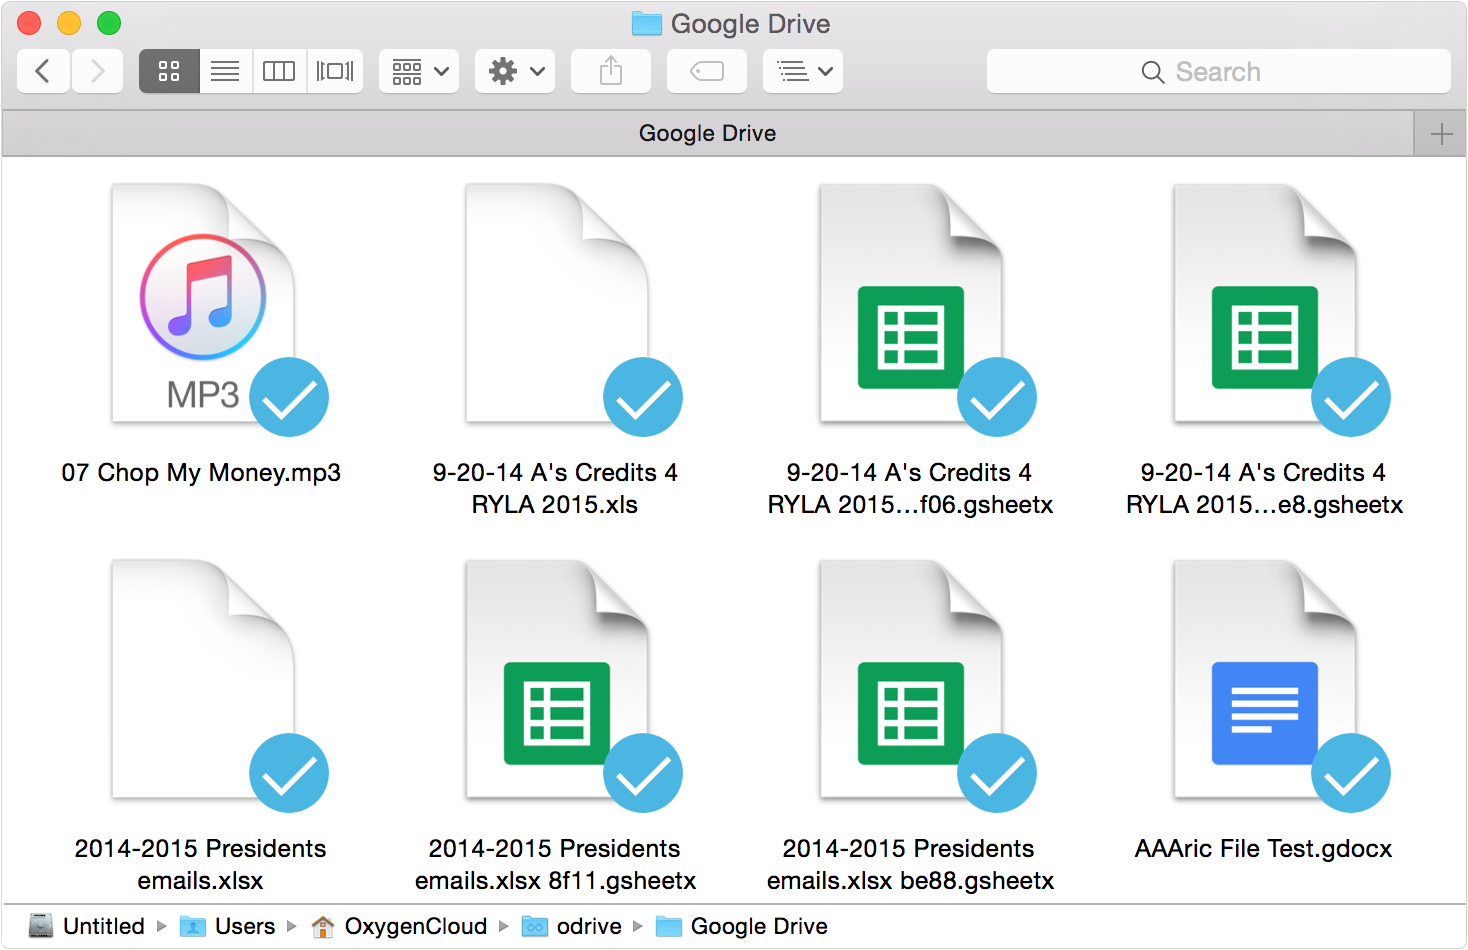 Access all the Google Doc files